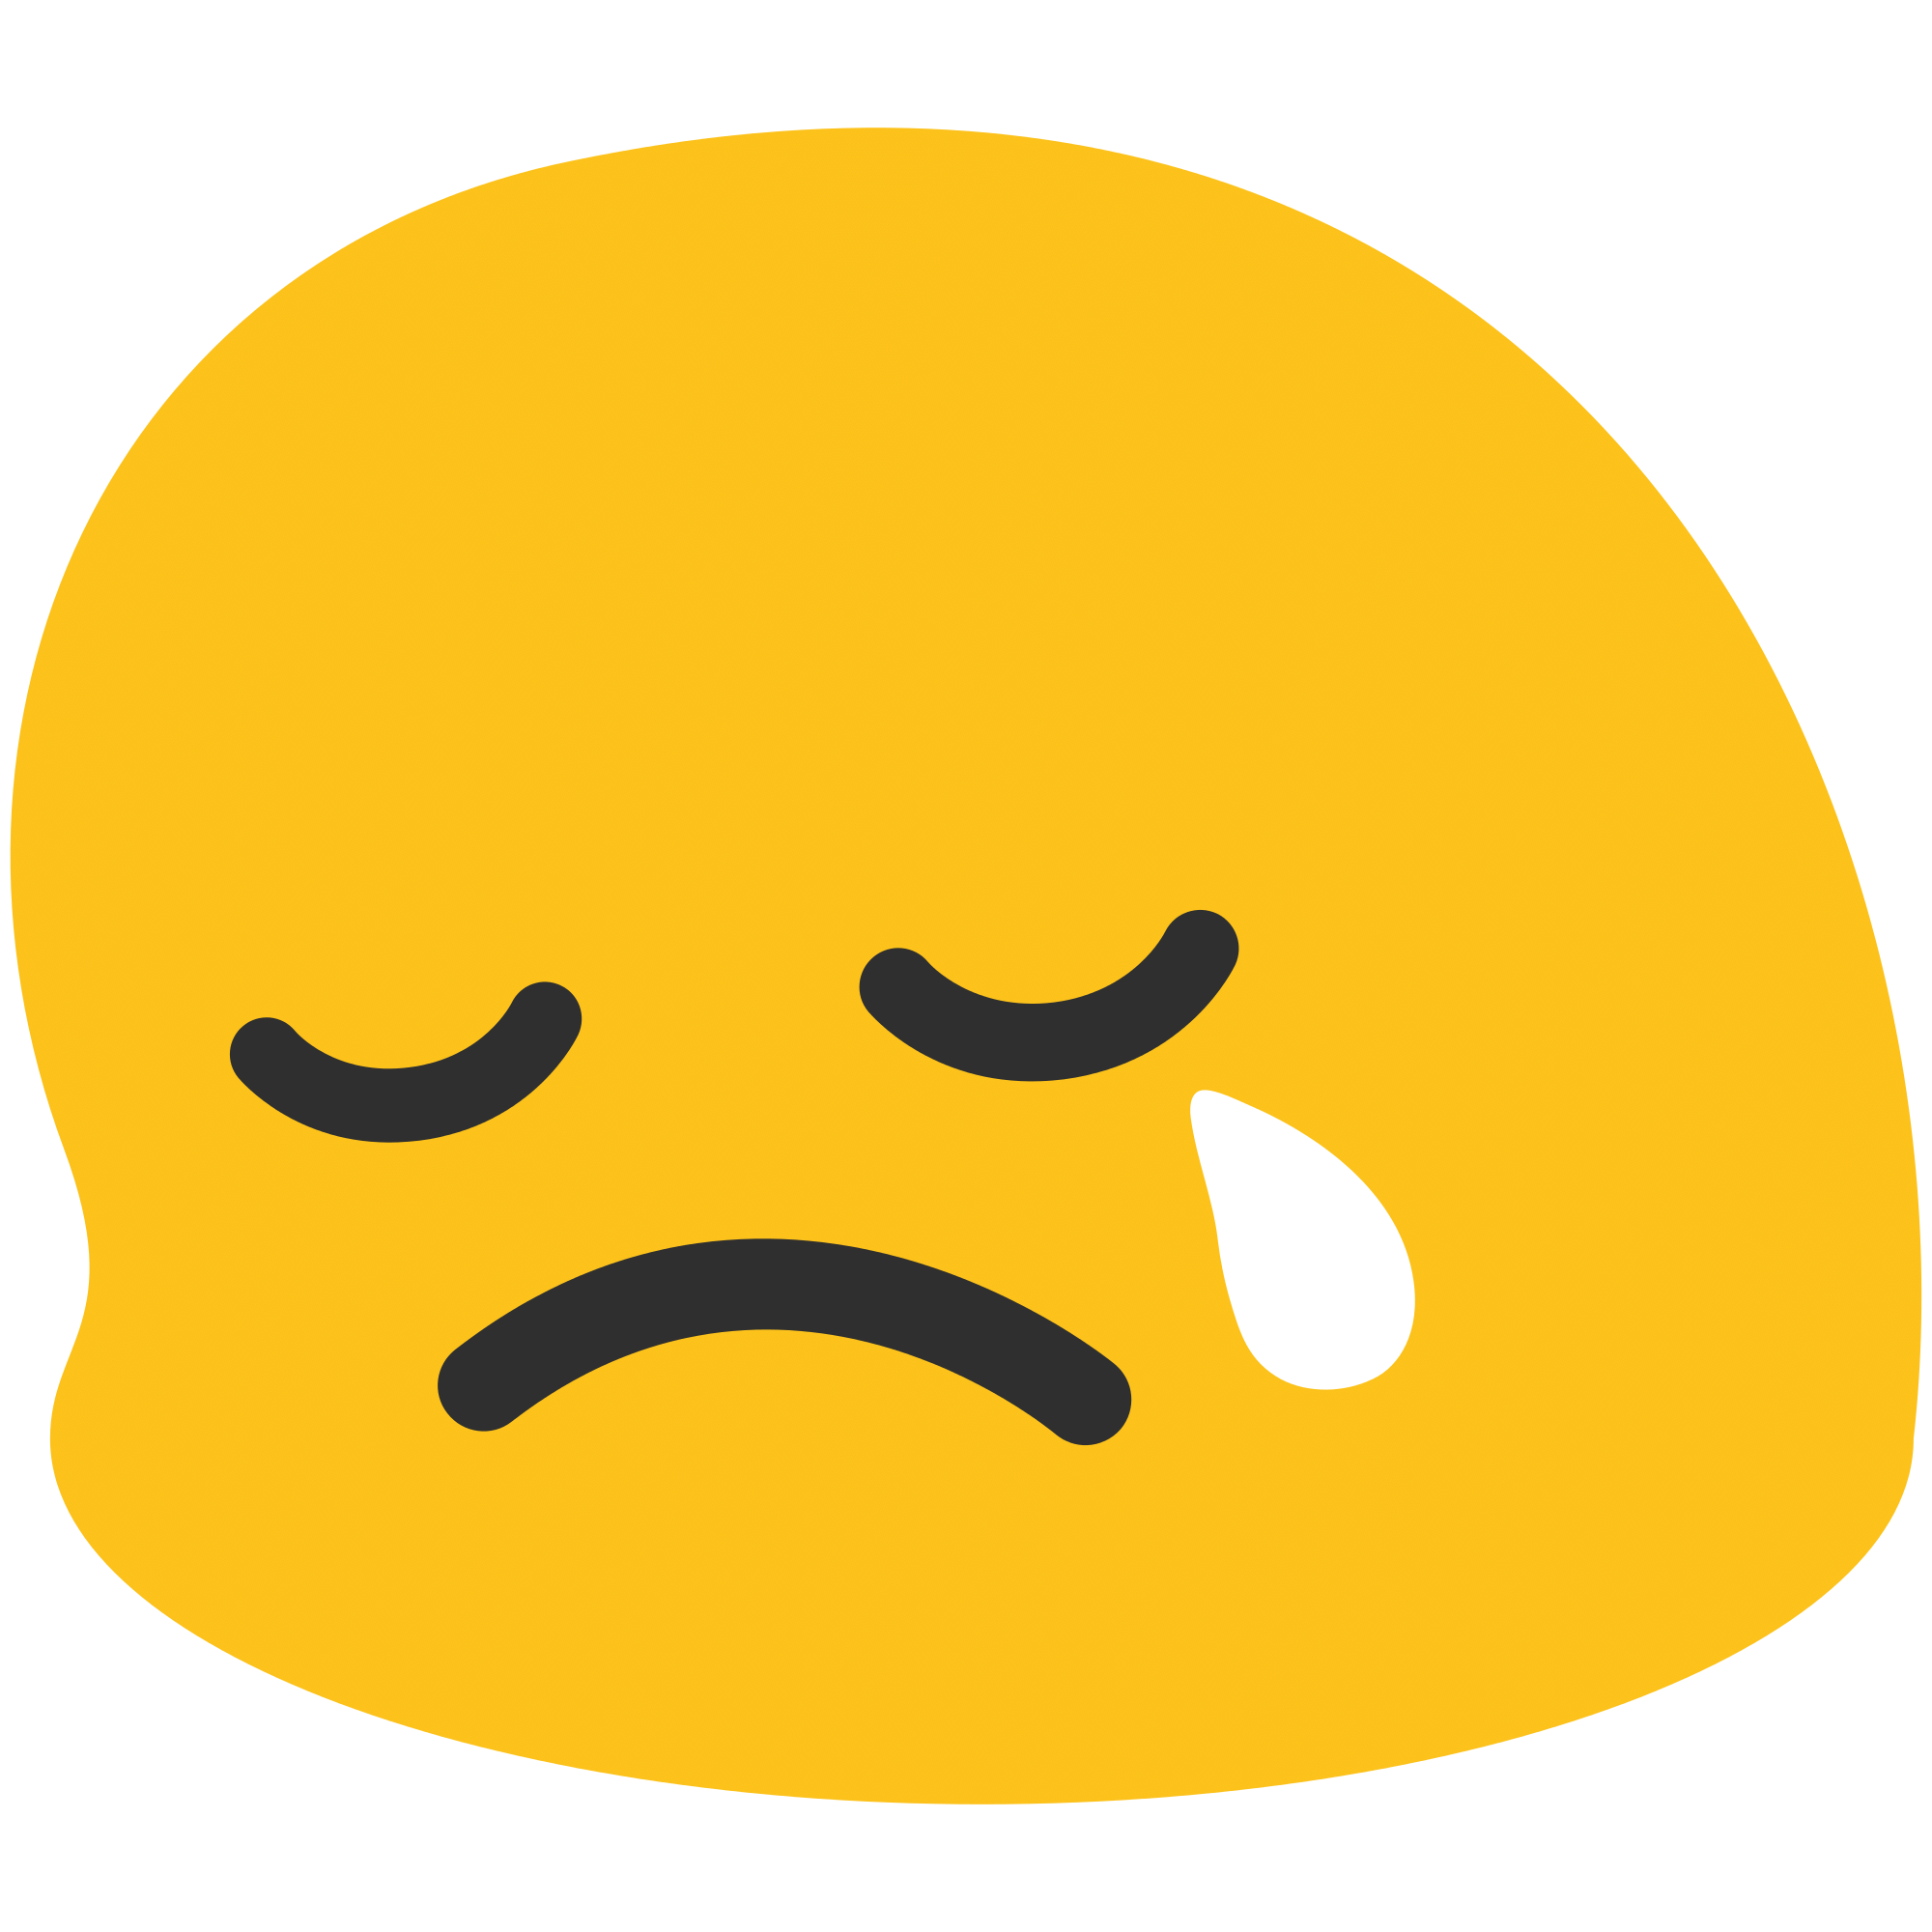 Download - PNG Sad